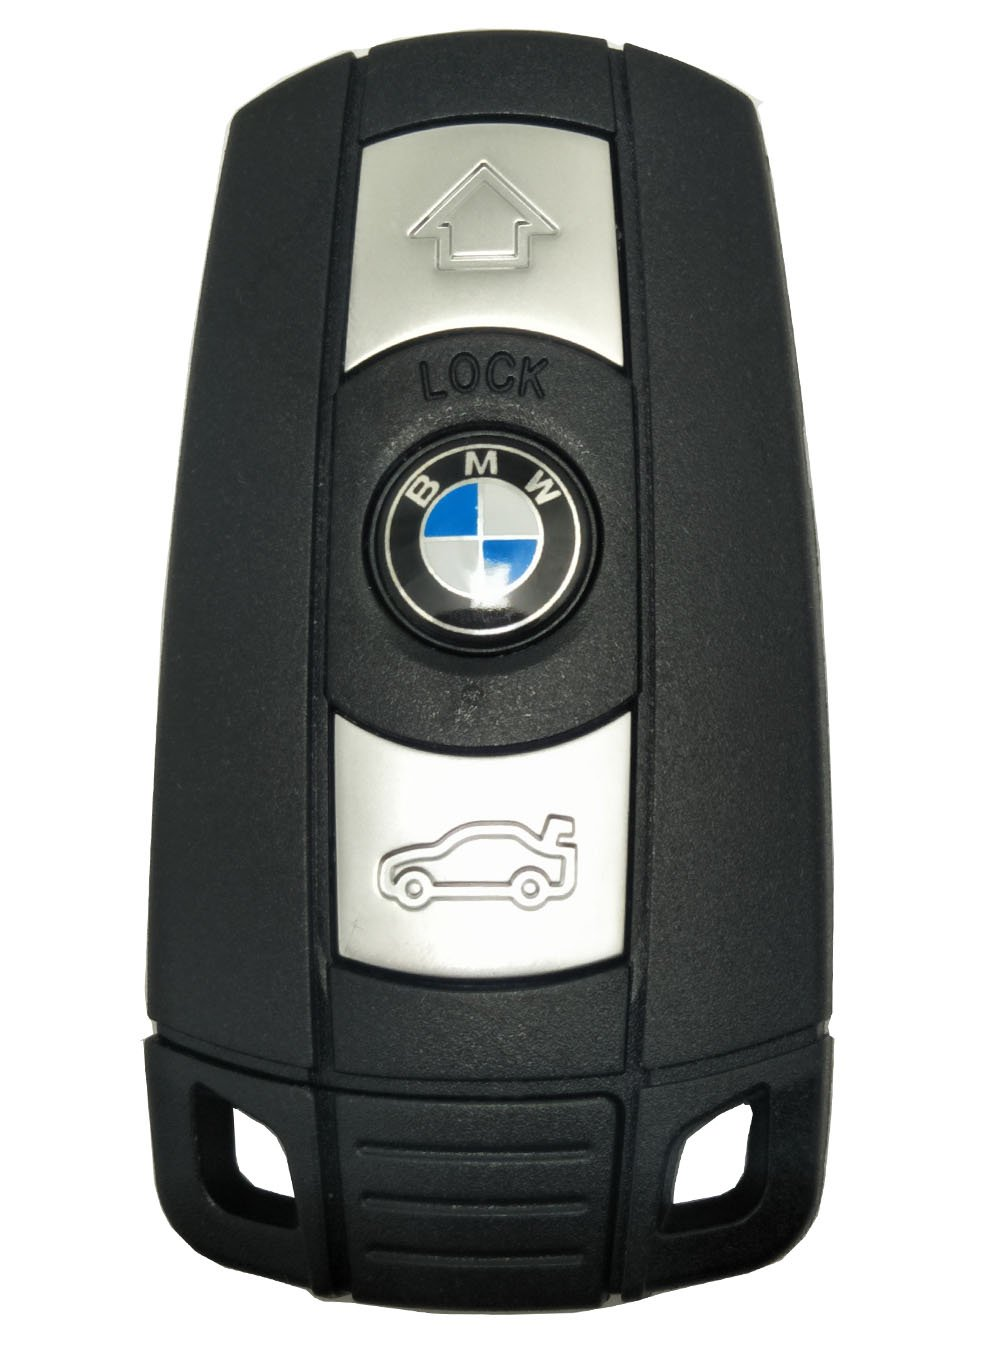 bm demac htm end key fob sale bmw ser smart for pm fit exact p shell